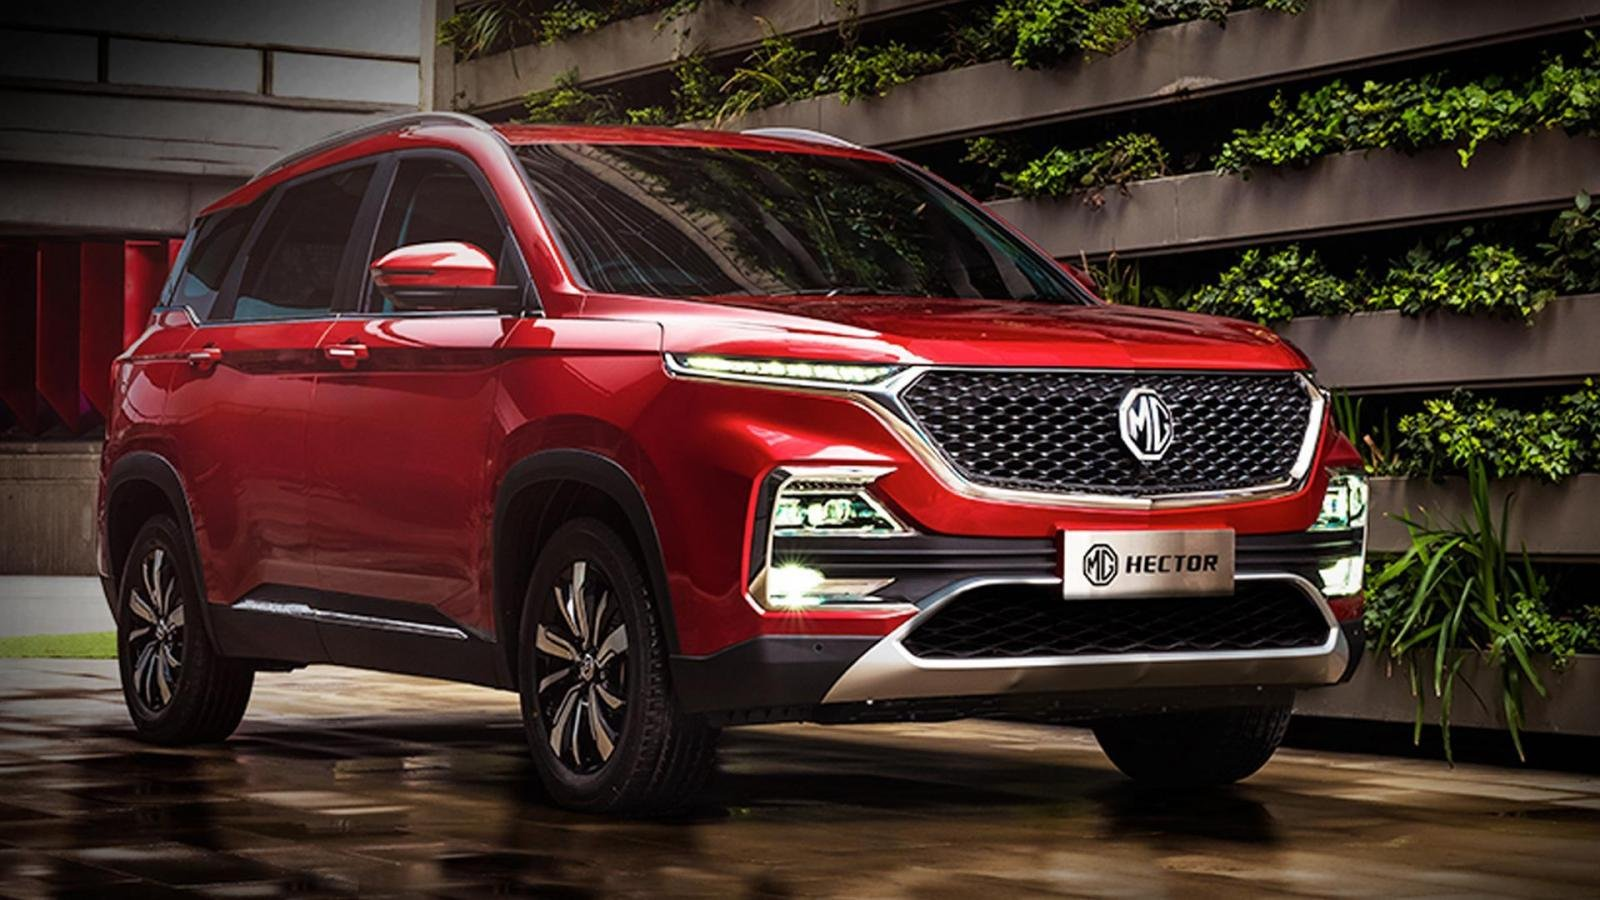 MG Hector's Indonesian Variant Gets ADAS Tech, Automaker May Bring It To India Also